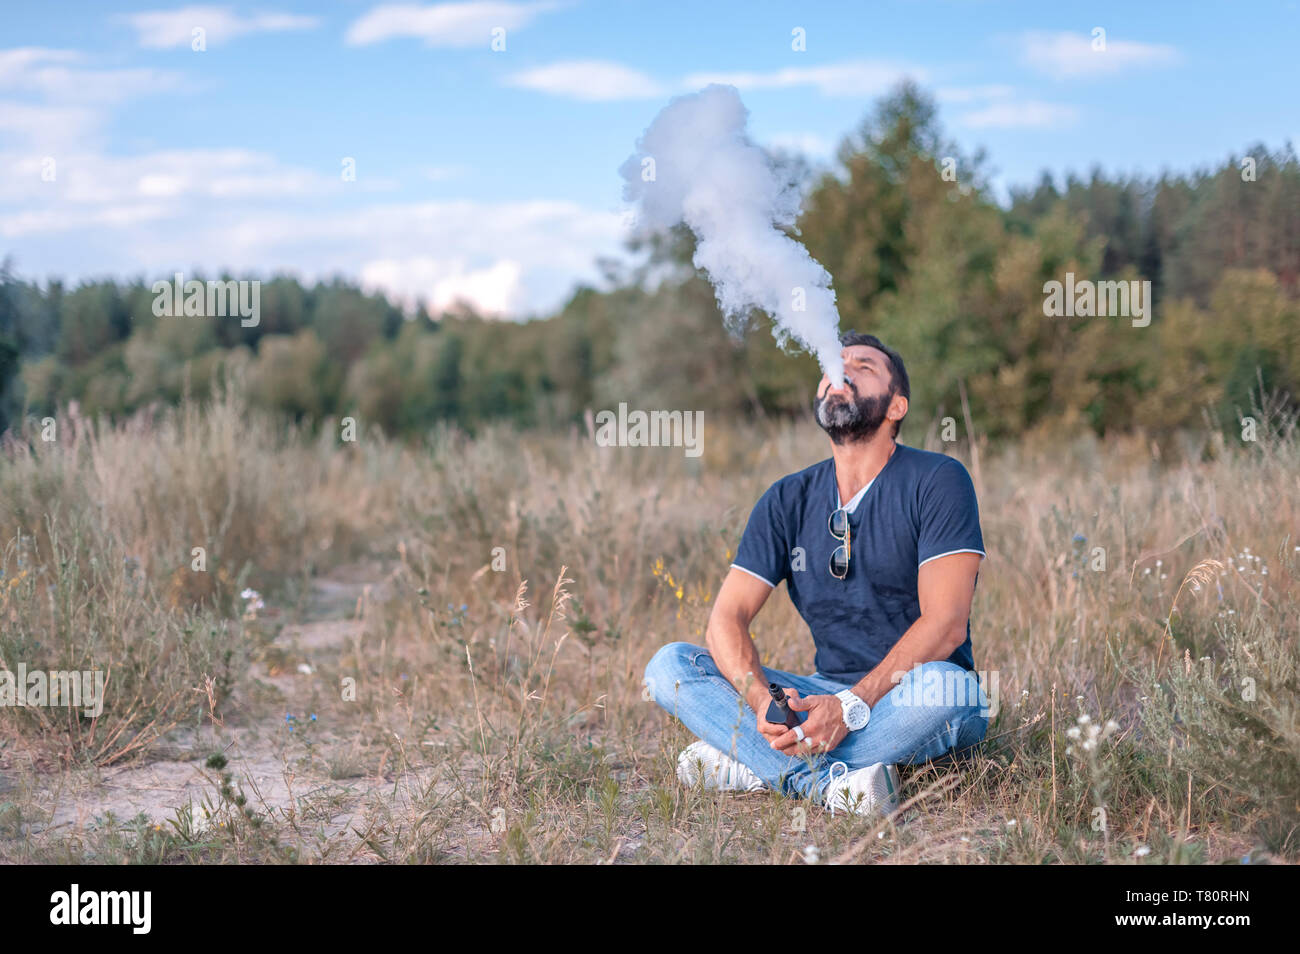 Brutal vape man hold and smoking his electronic smoke device blowing a stream of smoke spread. Stylish man. - Stock Image